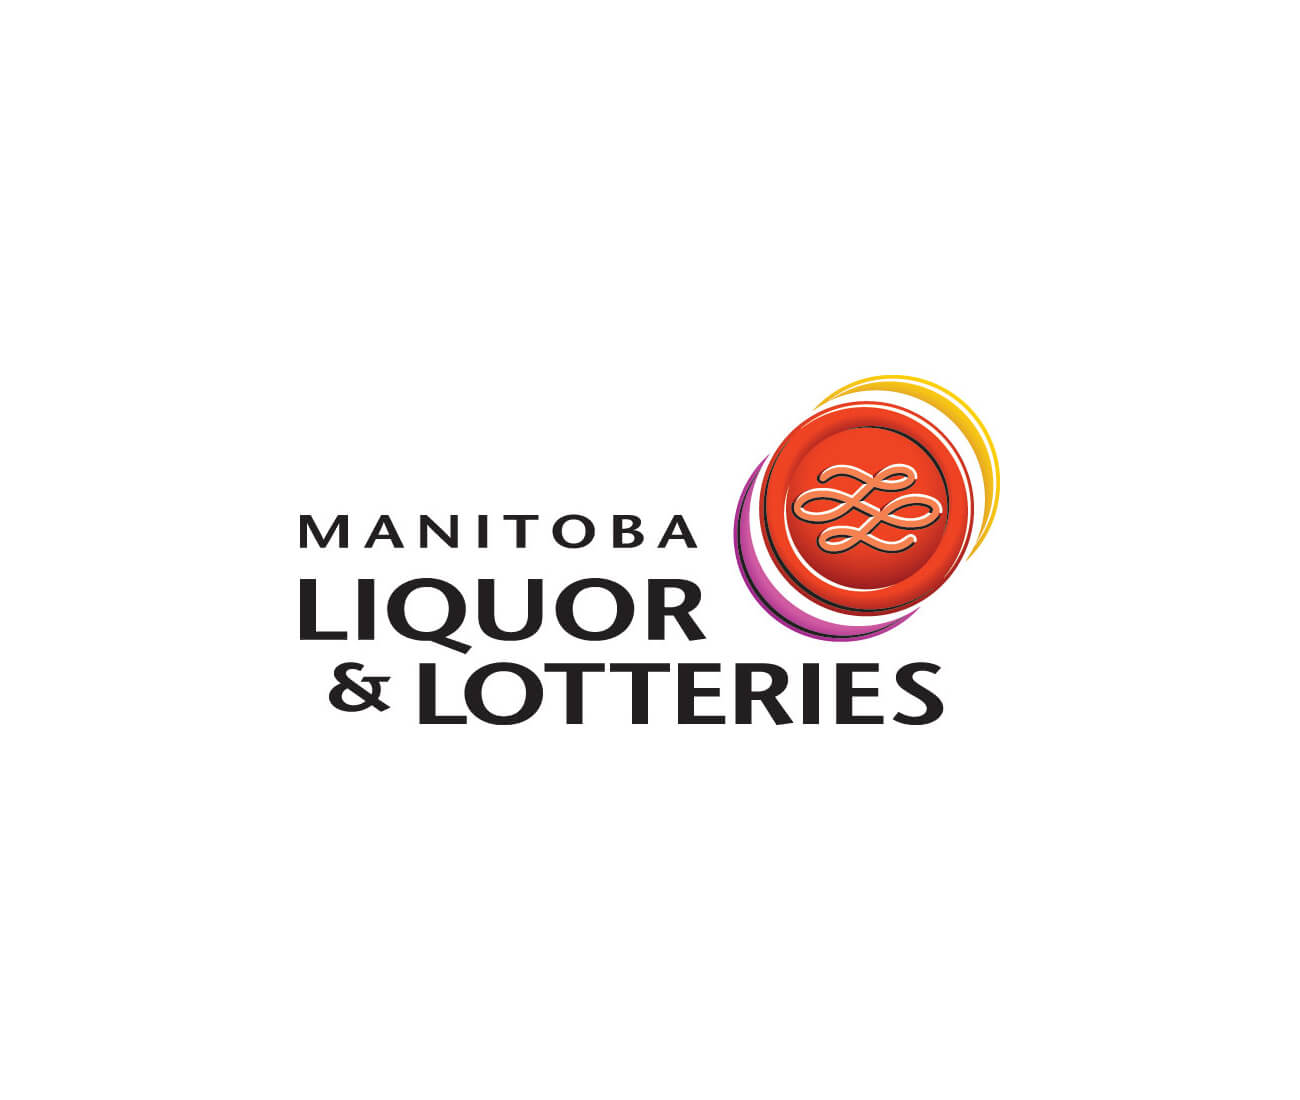 Manitoba Liquor & Lotteries